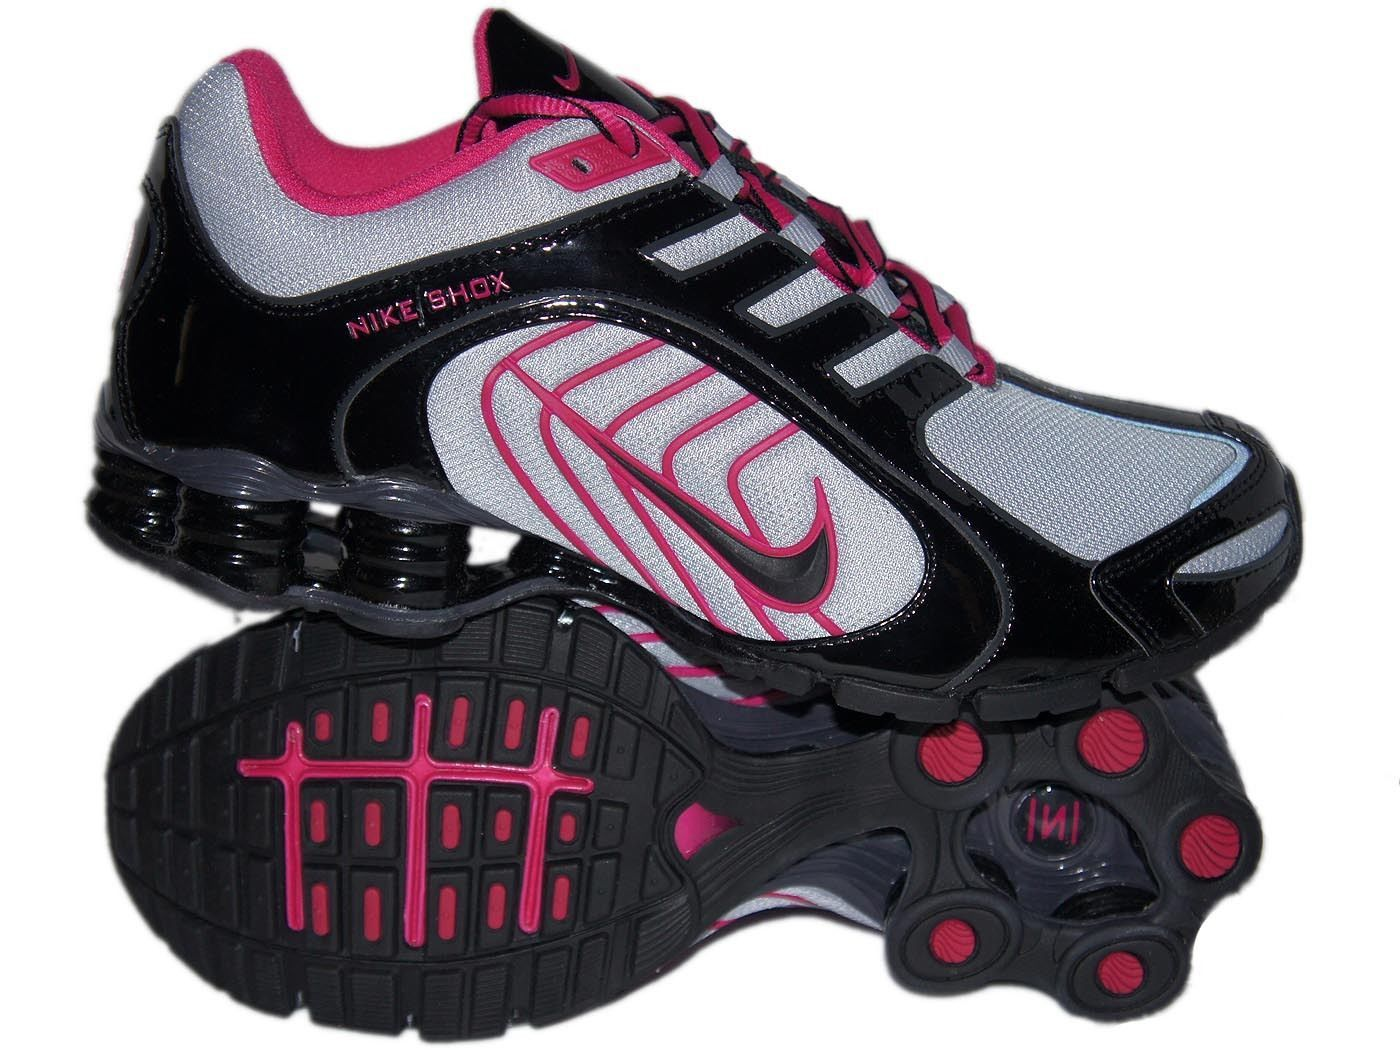 07ce99d93349 Women s nike shox navina size 7.5 - grey black fireberry running ...